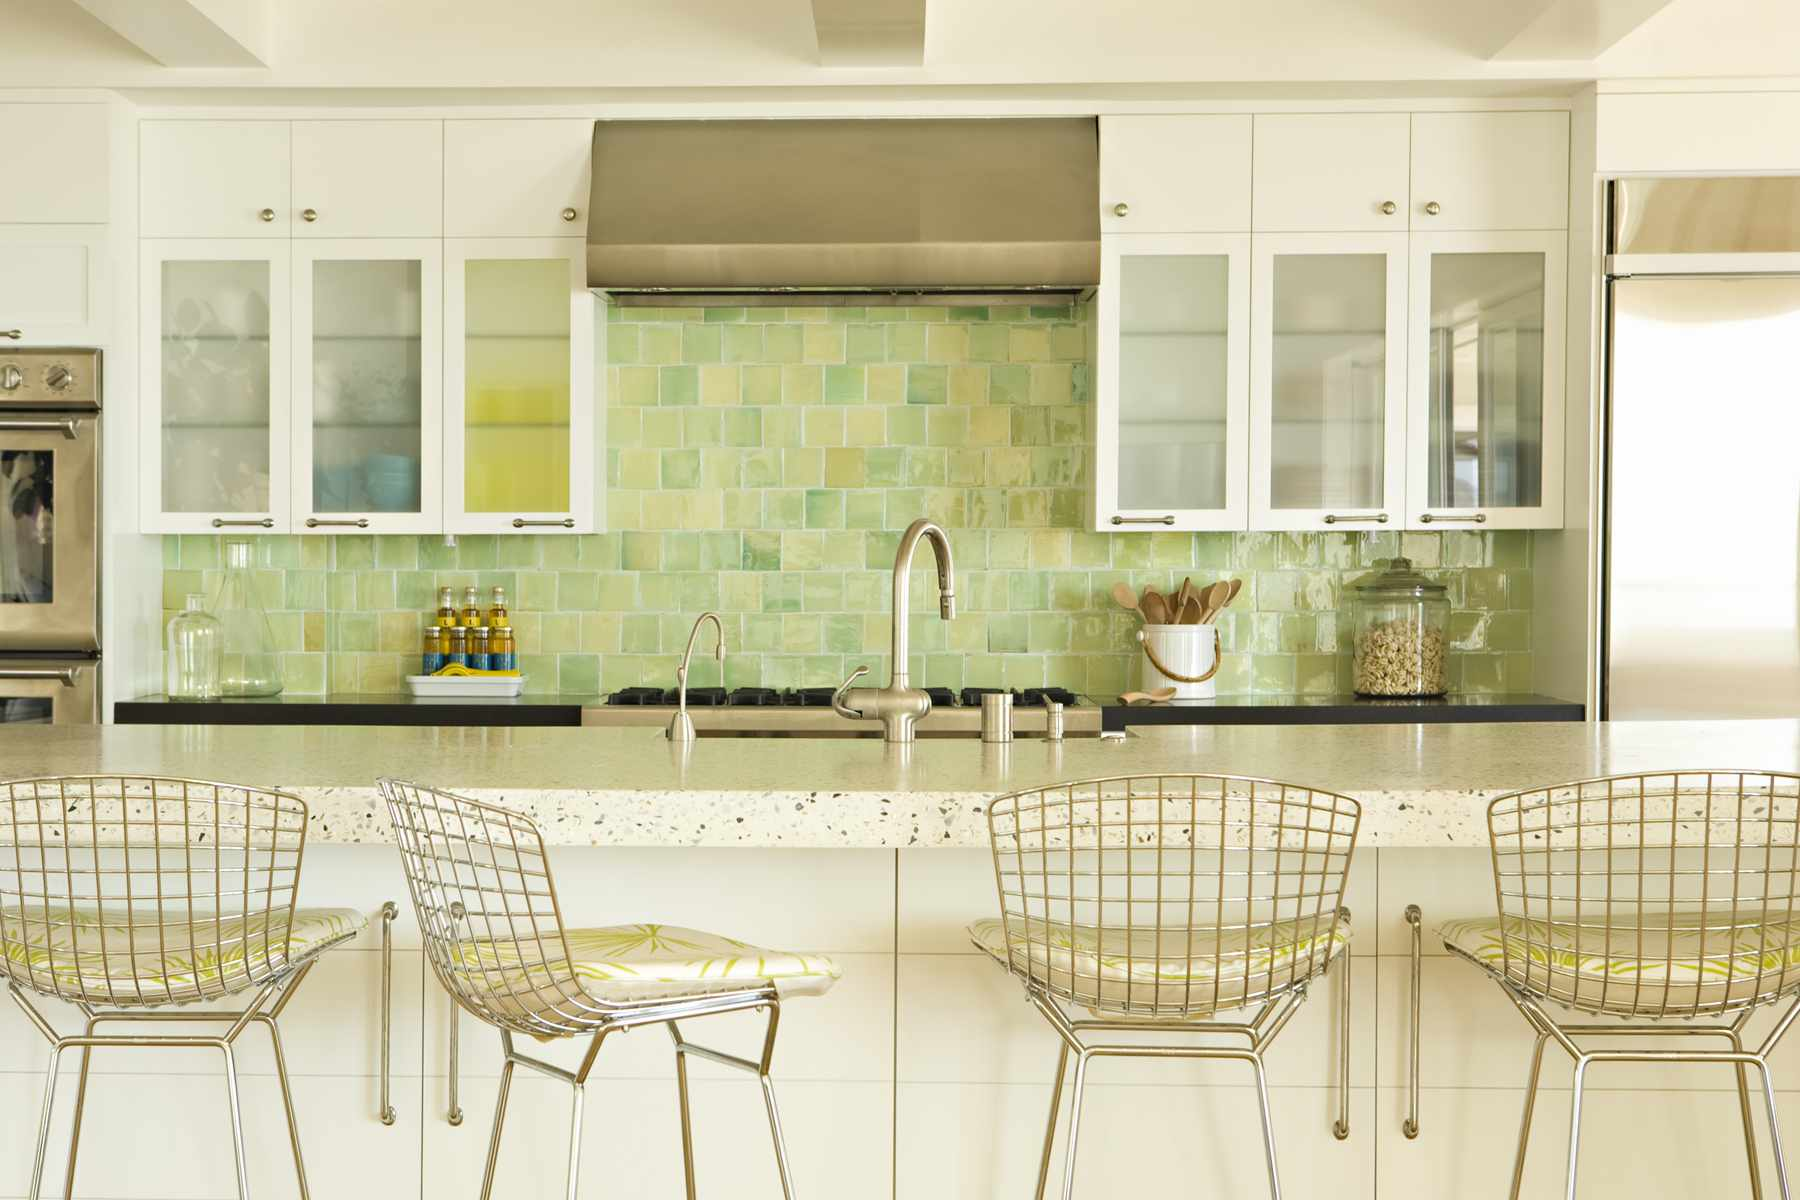 speckled solid surface countertop by Formica